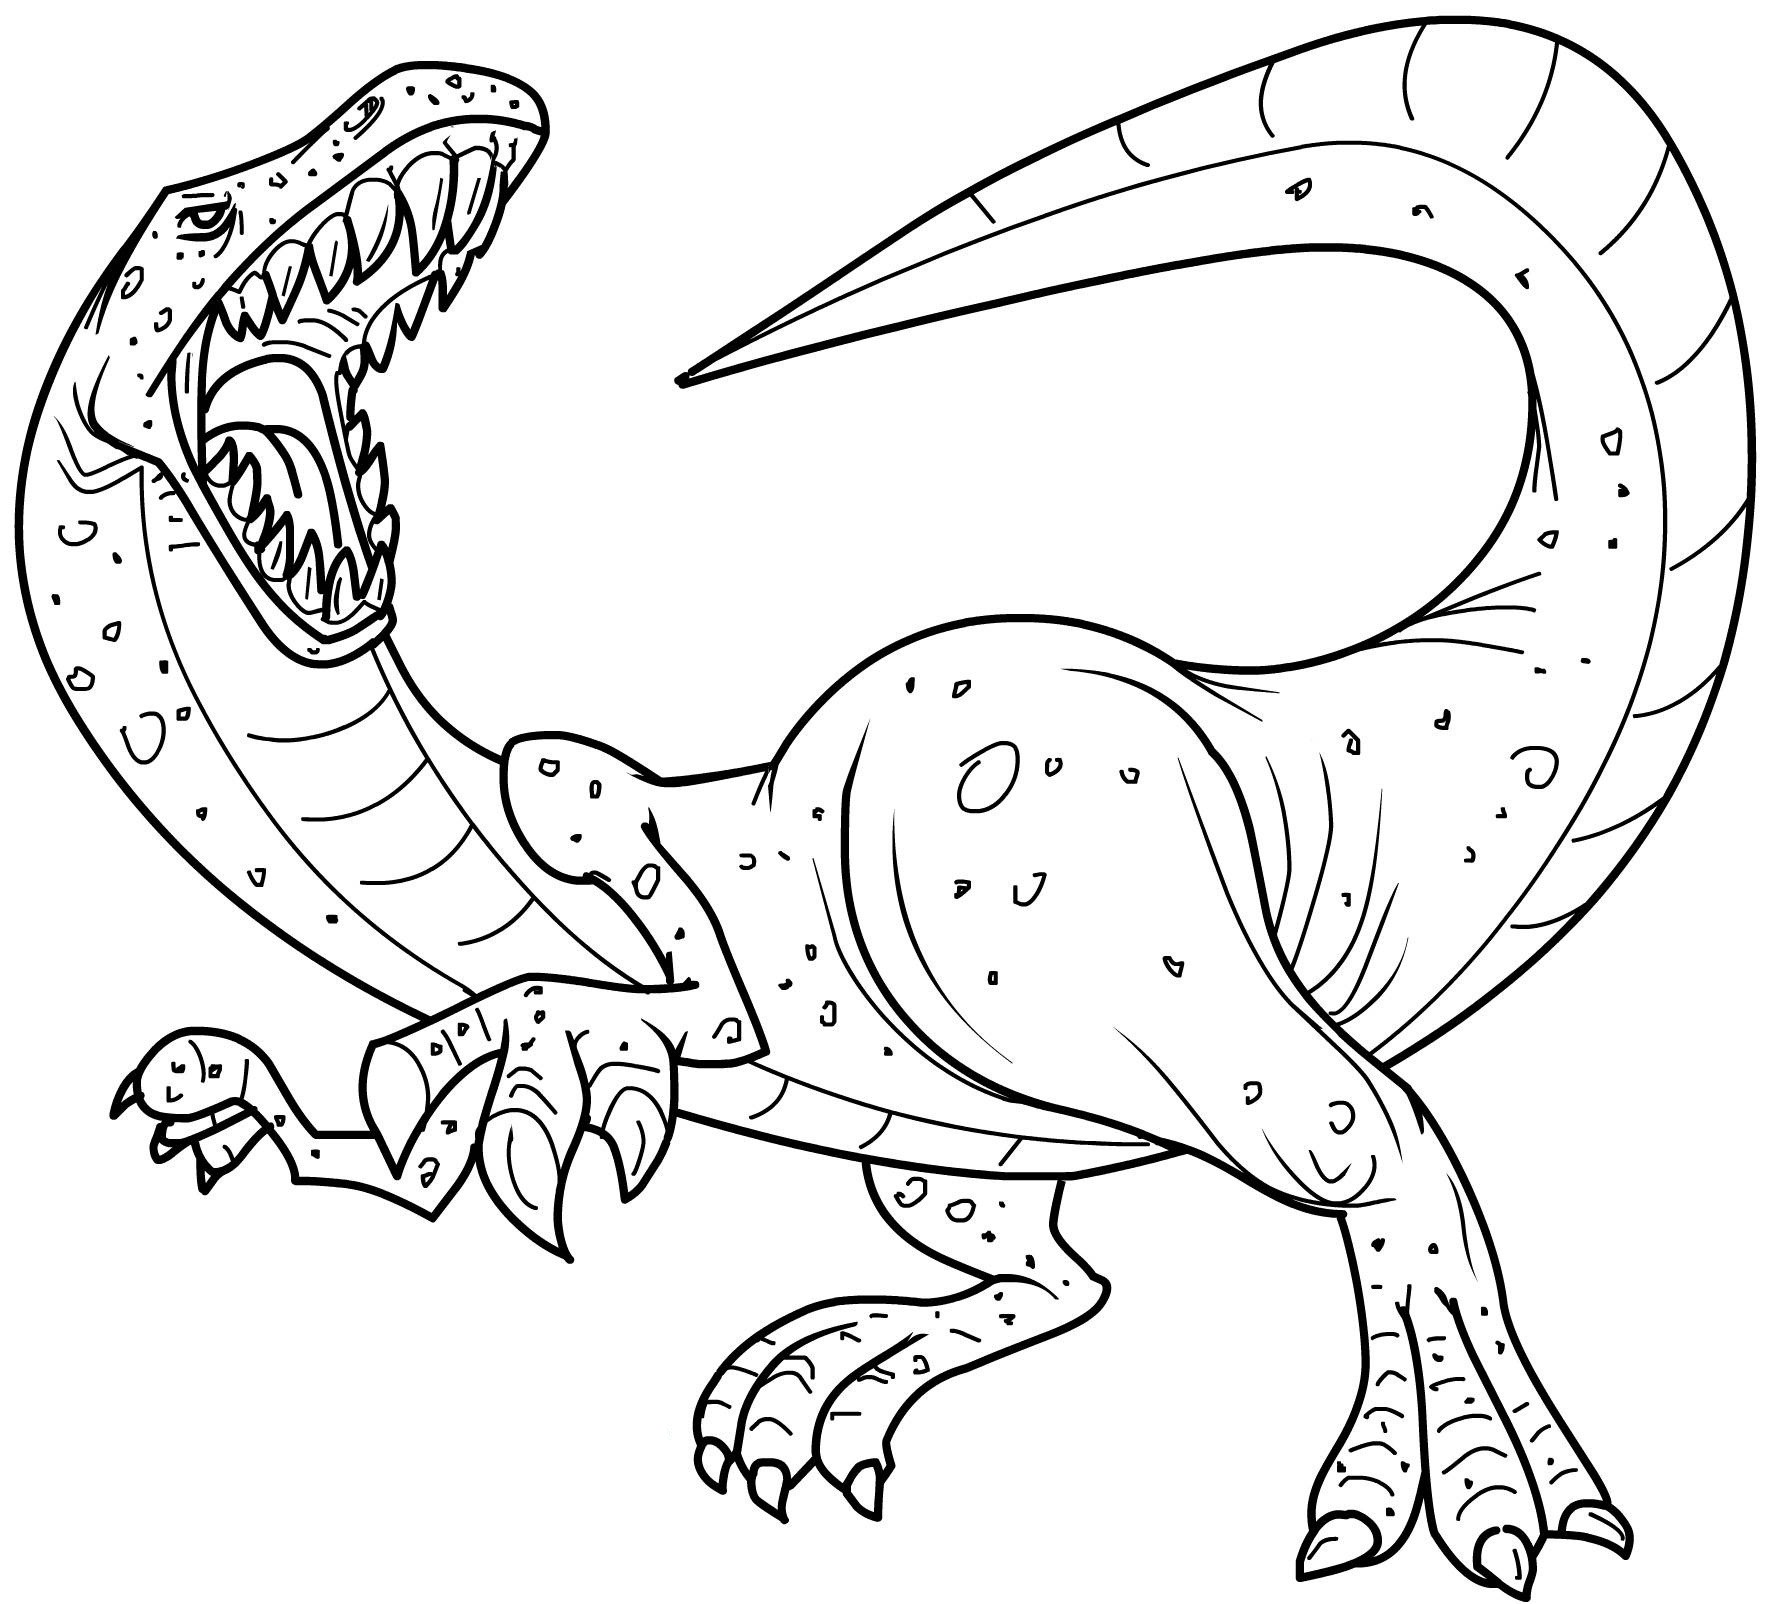 kids coloring pages dinosaurs-#4